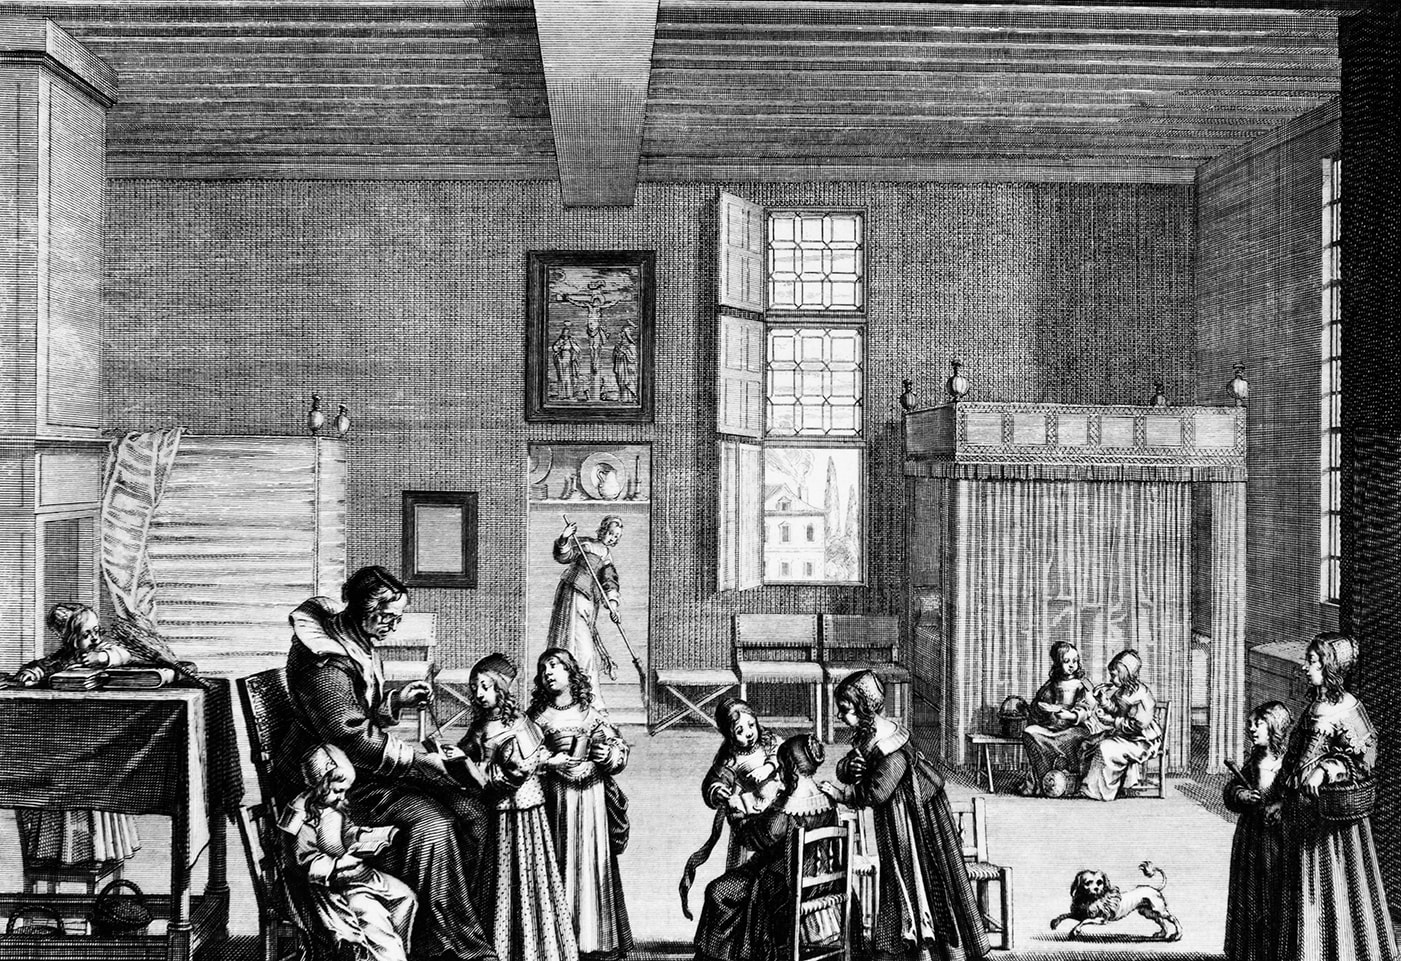 Image showing a bourgeois school of girls in Paris.